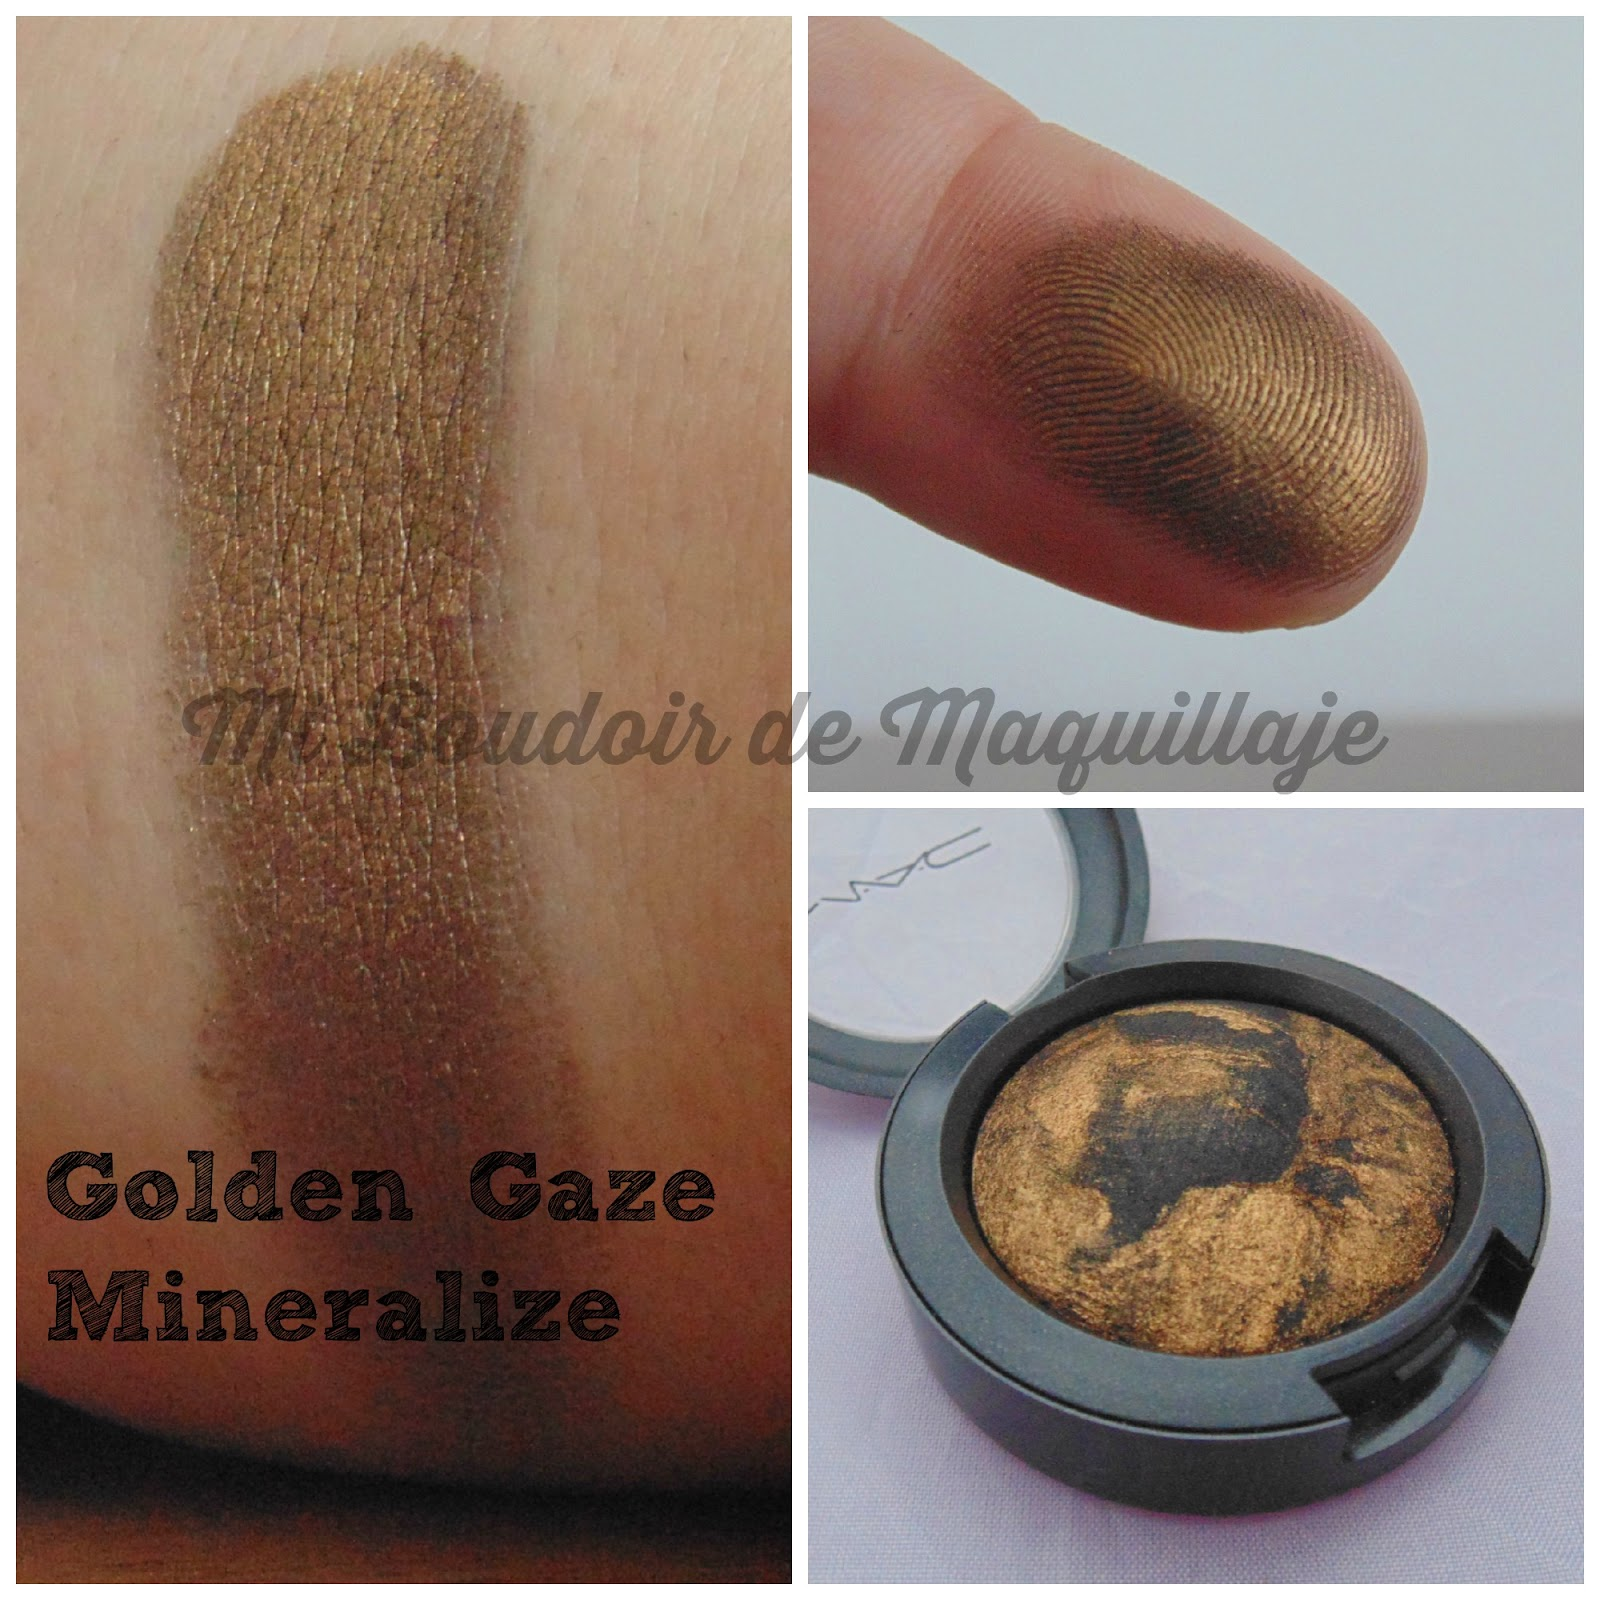 Golden Glaze Mineralize Eyeshadow Mac